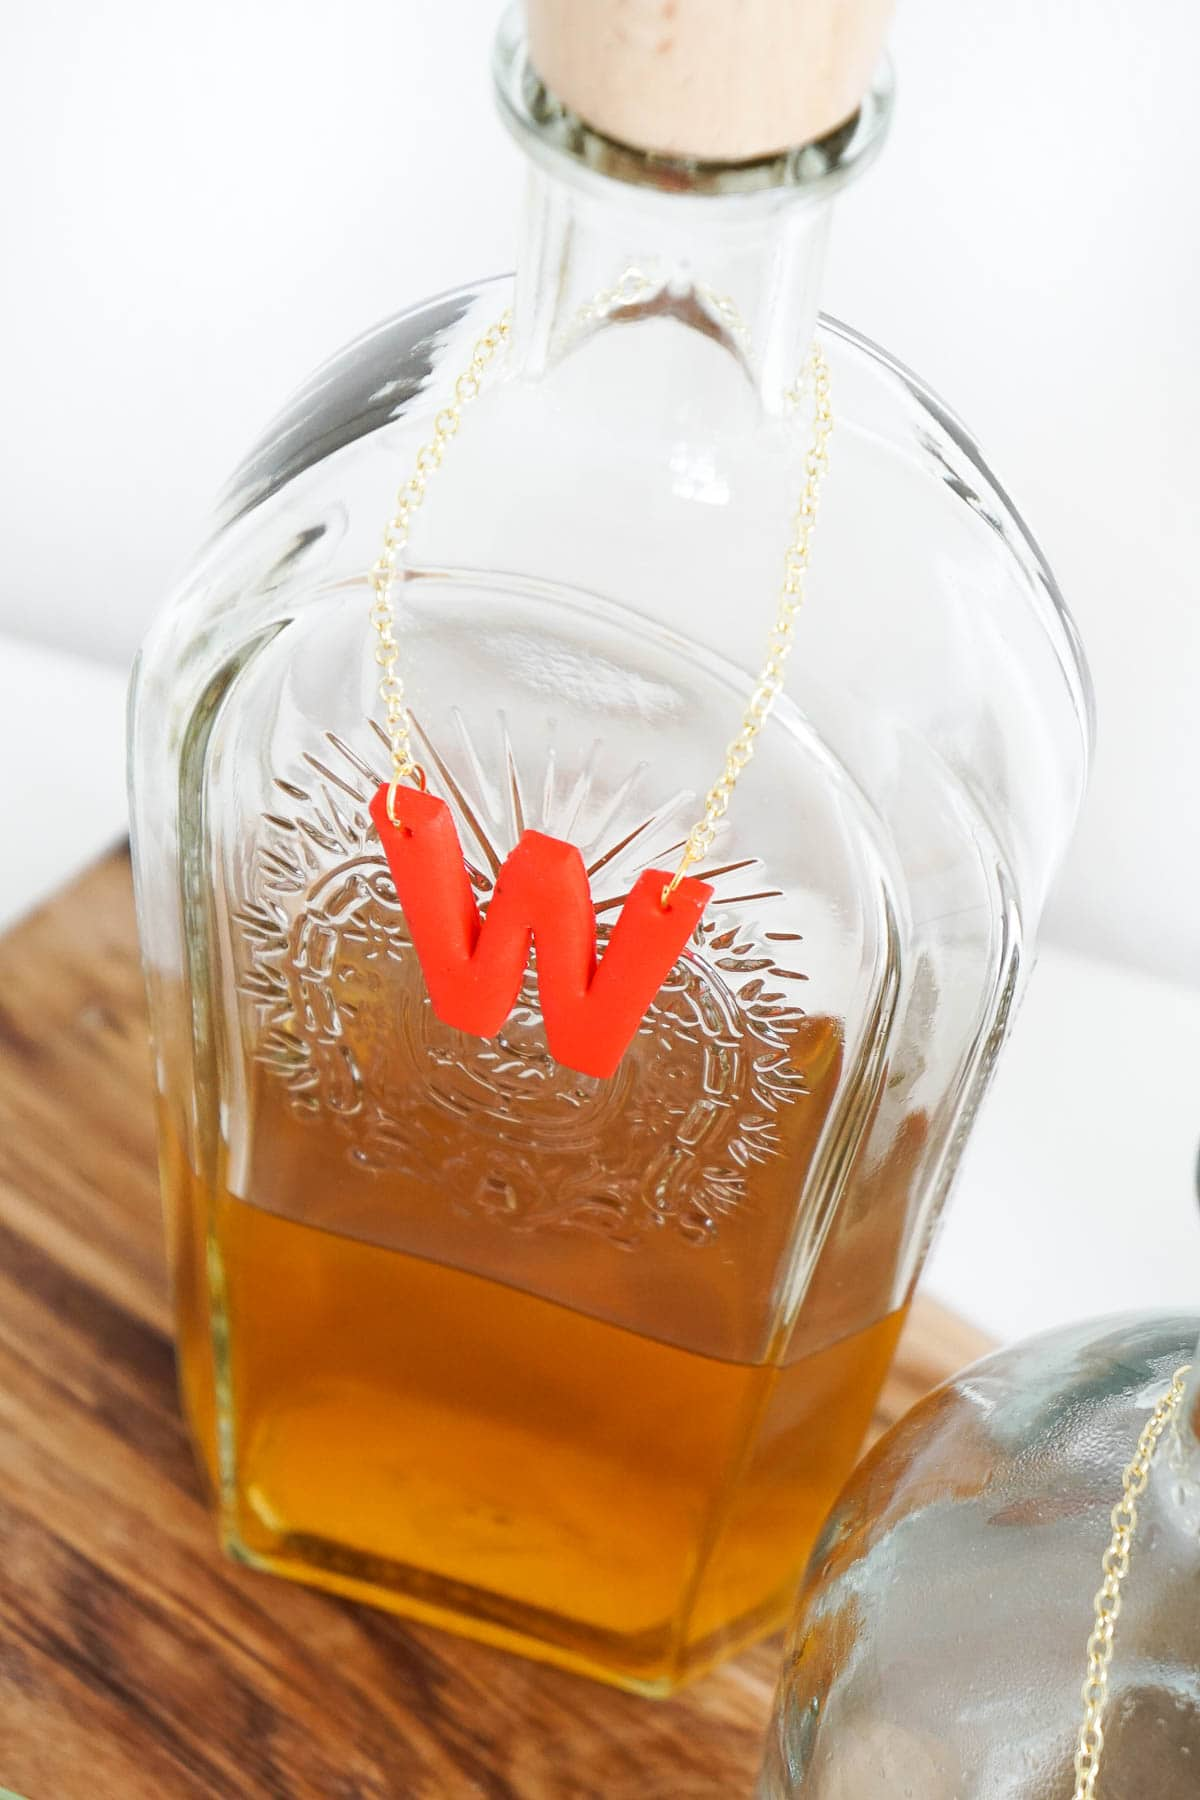 DIY Decanter Tags tutorial by Sugar & Cloth, an award winning DIY and lifestyle blog.